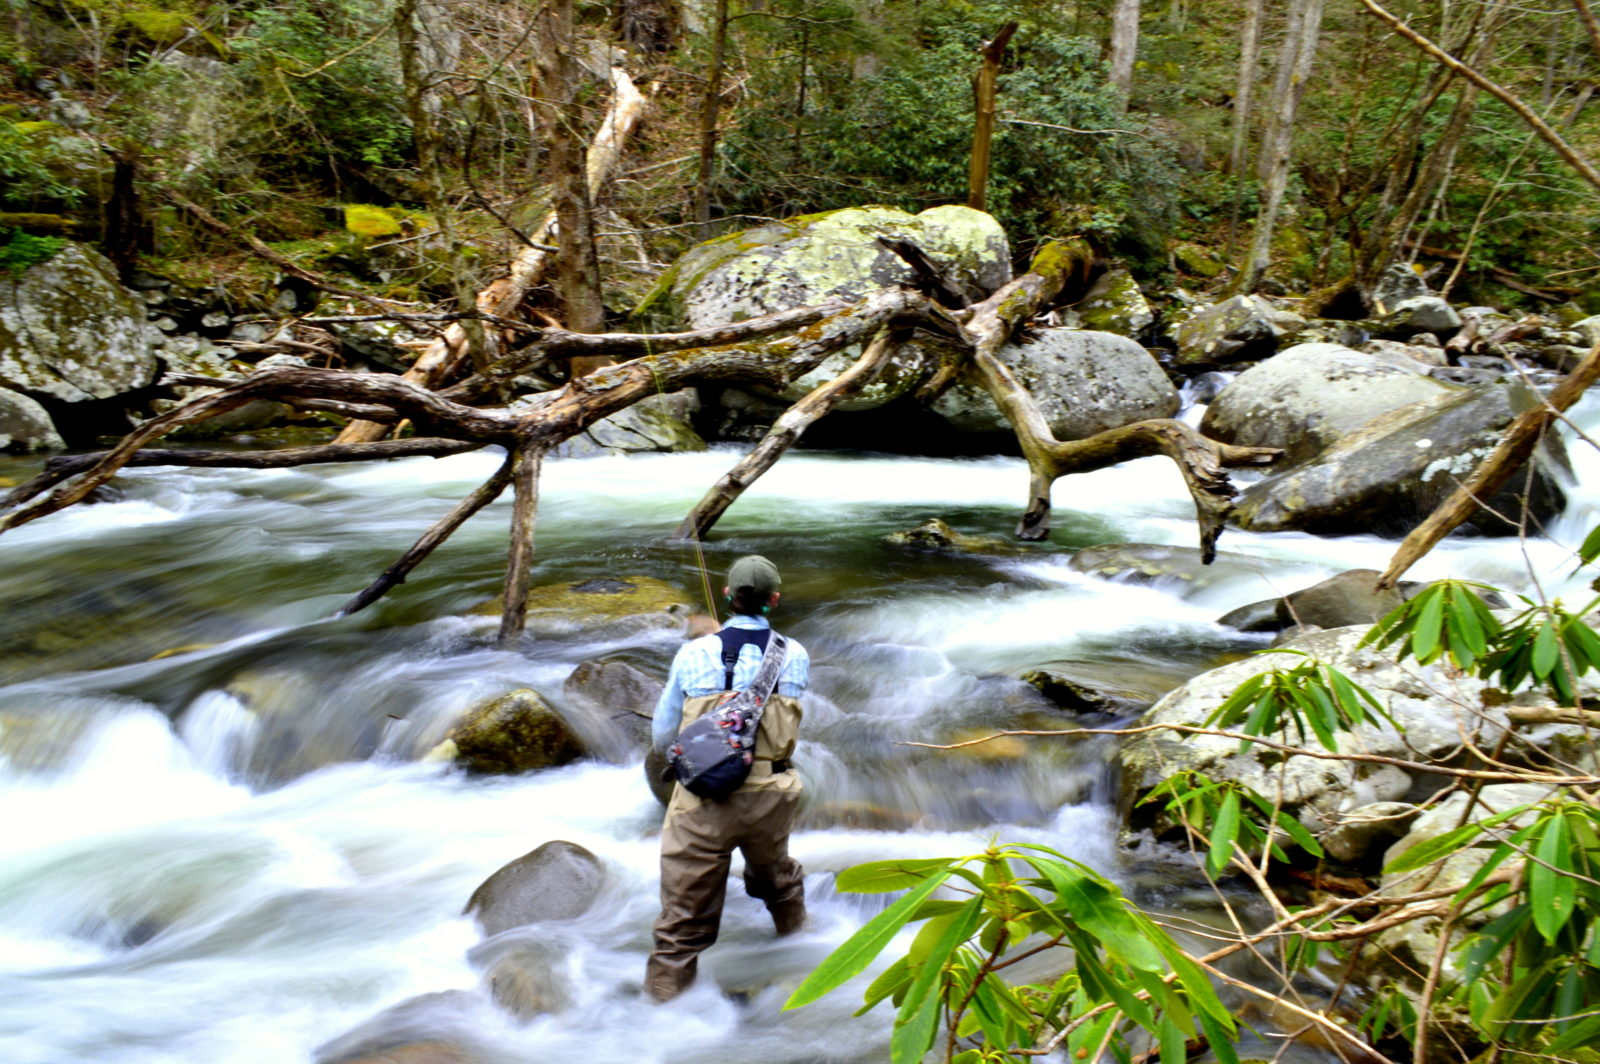 Fly fishing guides in the great smoky mountains of nc and tn for Smoky mountain trout fishing